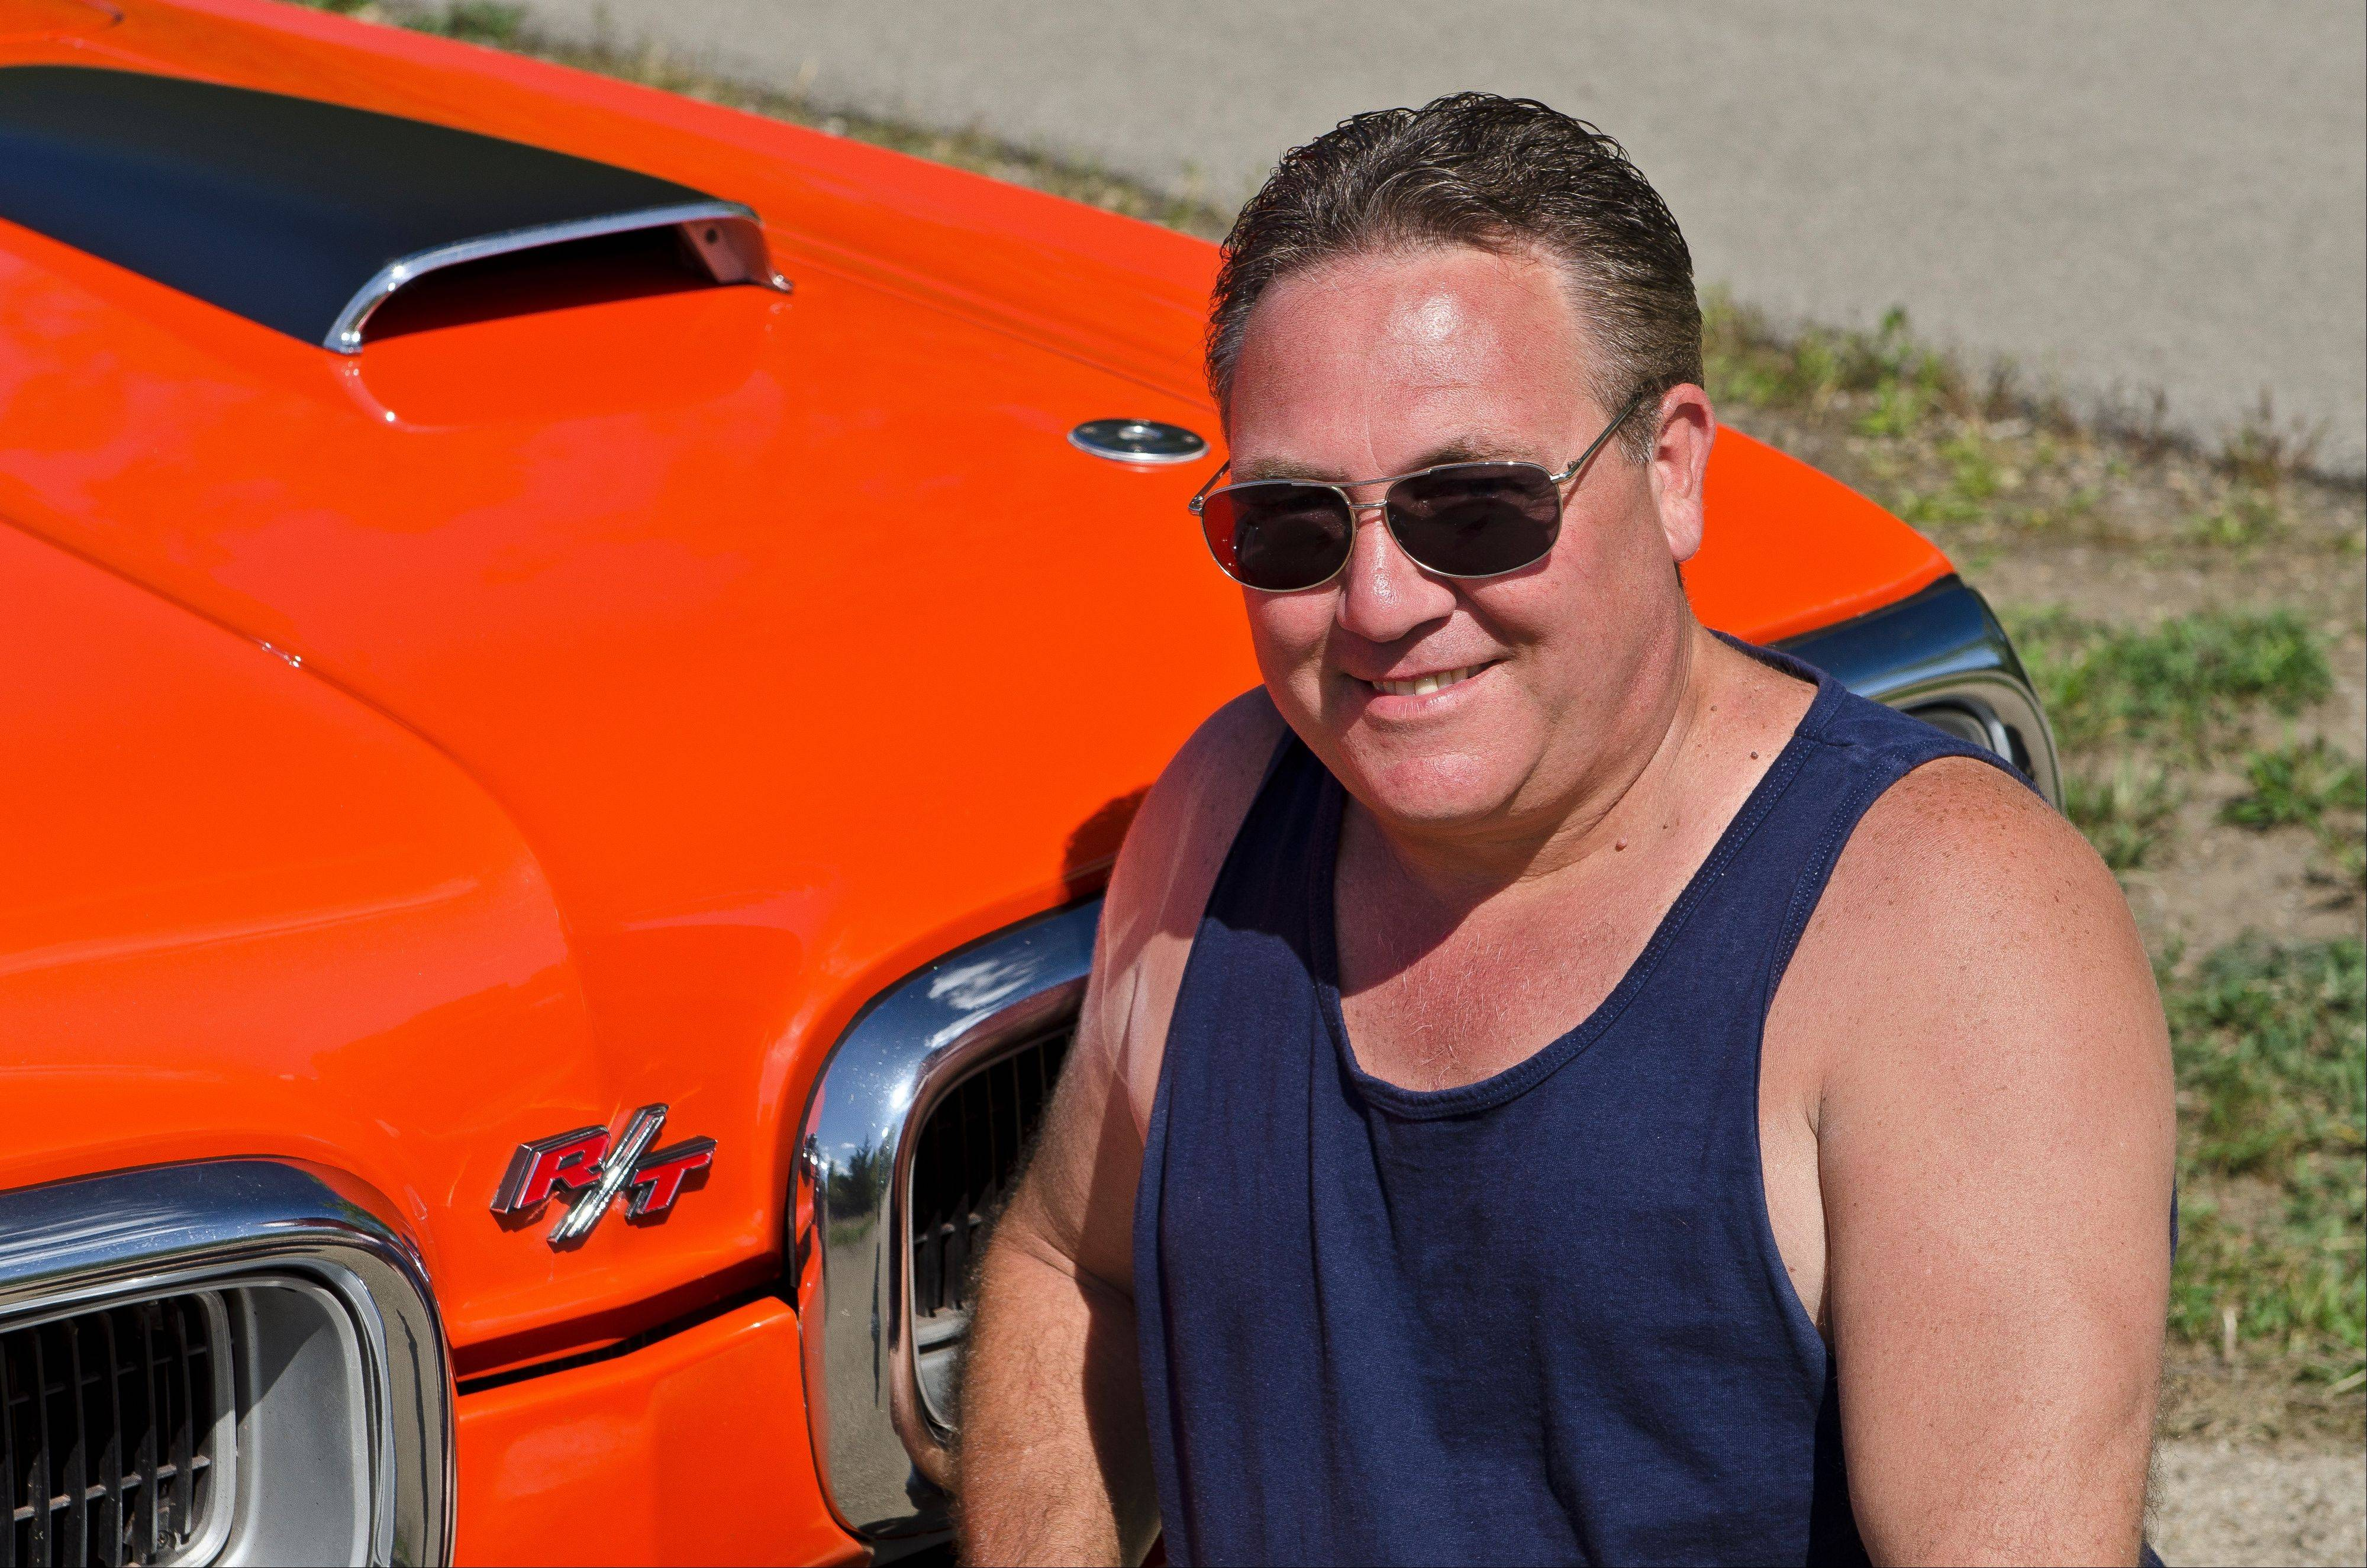 Tim Kelly found his Hemi Orange ride in Cedar Lake, Ind. It needed extensive bodywork, but was exactly the genuine Dodge muscle car he wanted.